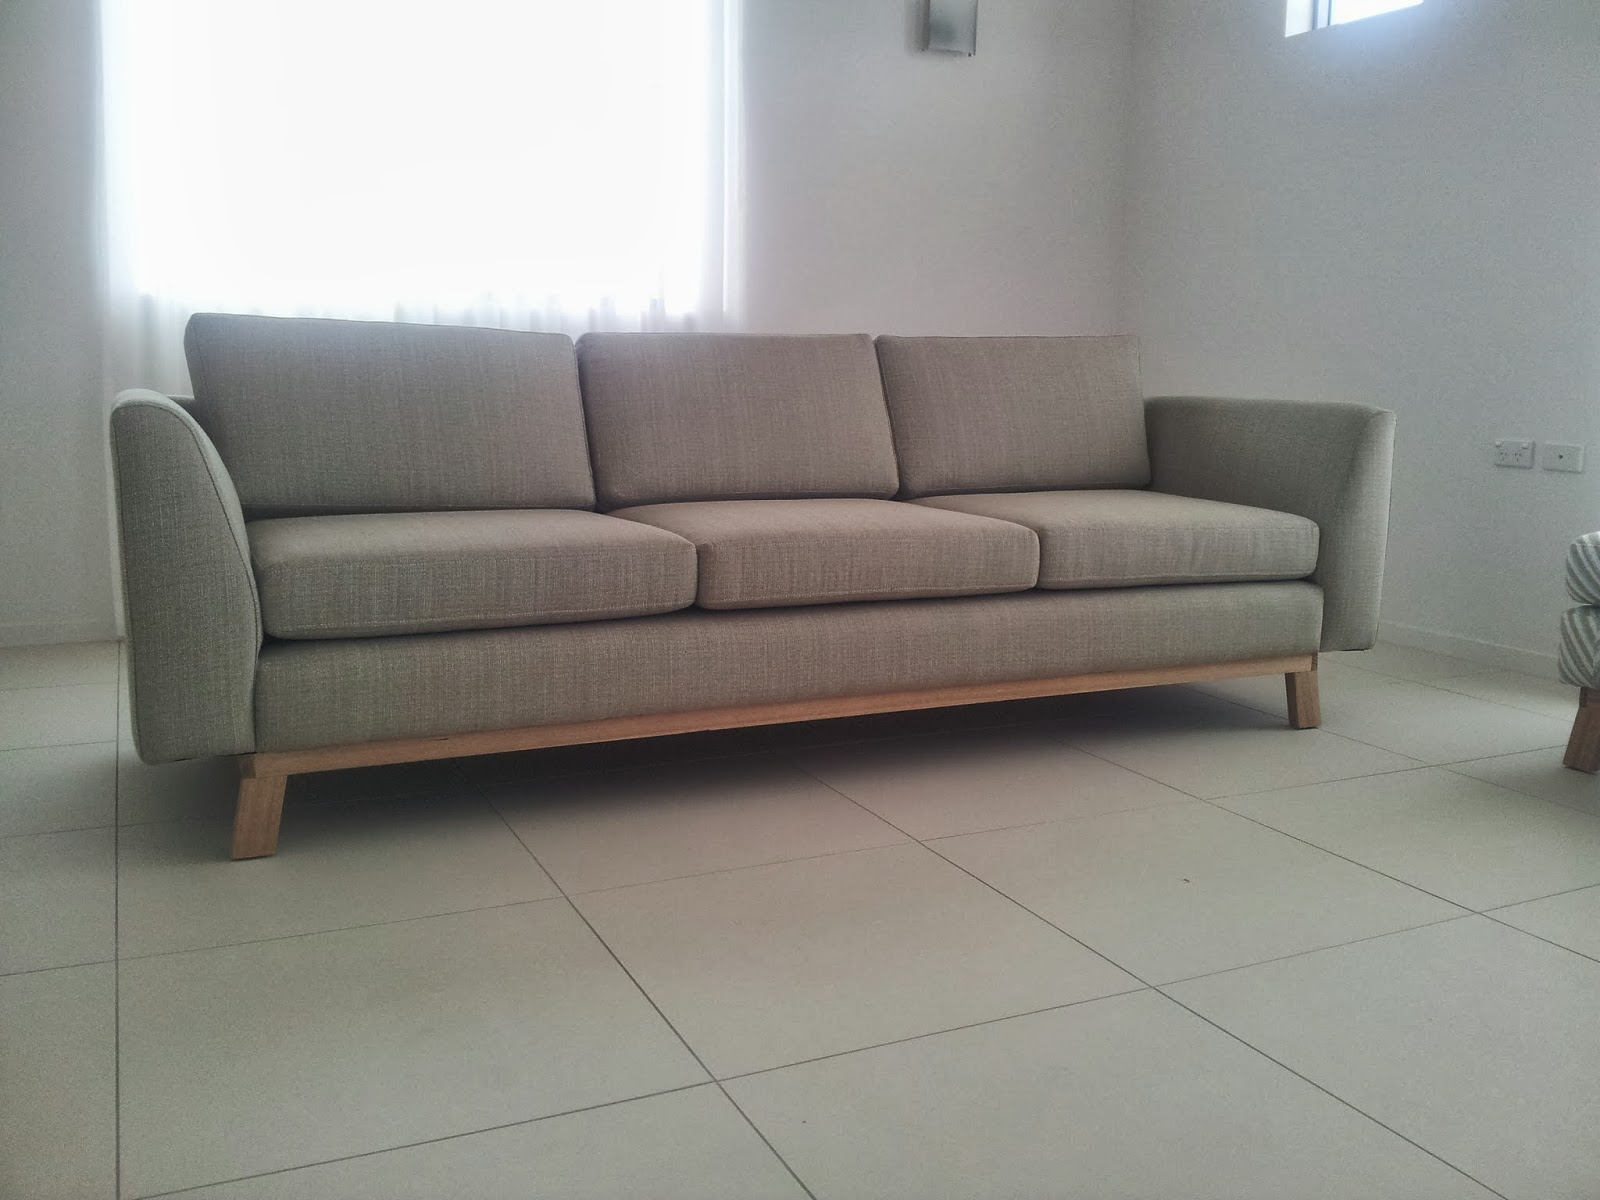 Single Sofa Bed Gold Coast Baja Convert A Couch And Manufacturer Recent Project By First Edition Upholstery